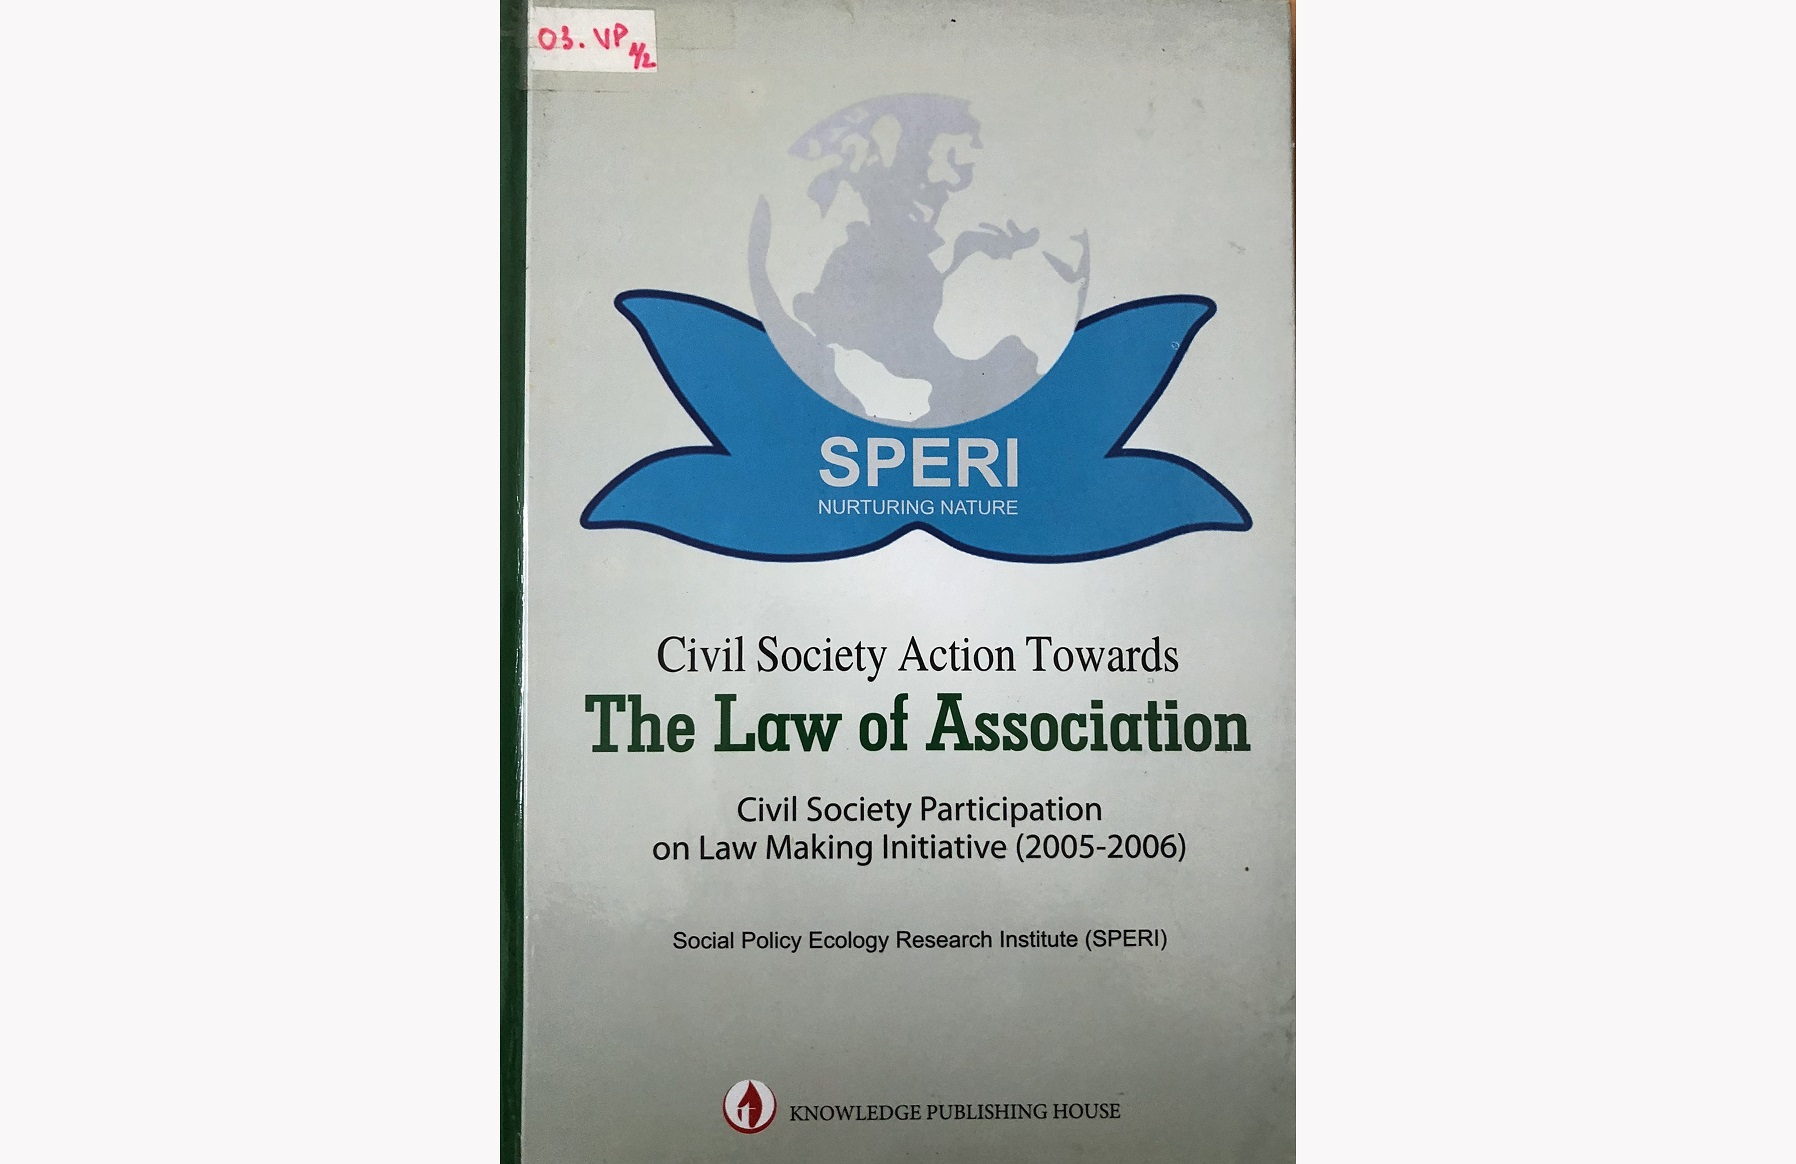 Civil Society Action Towards the Law of Association